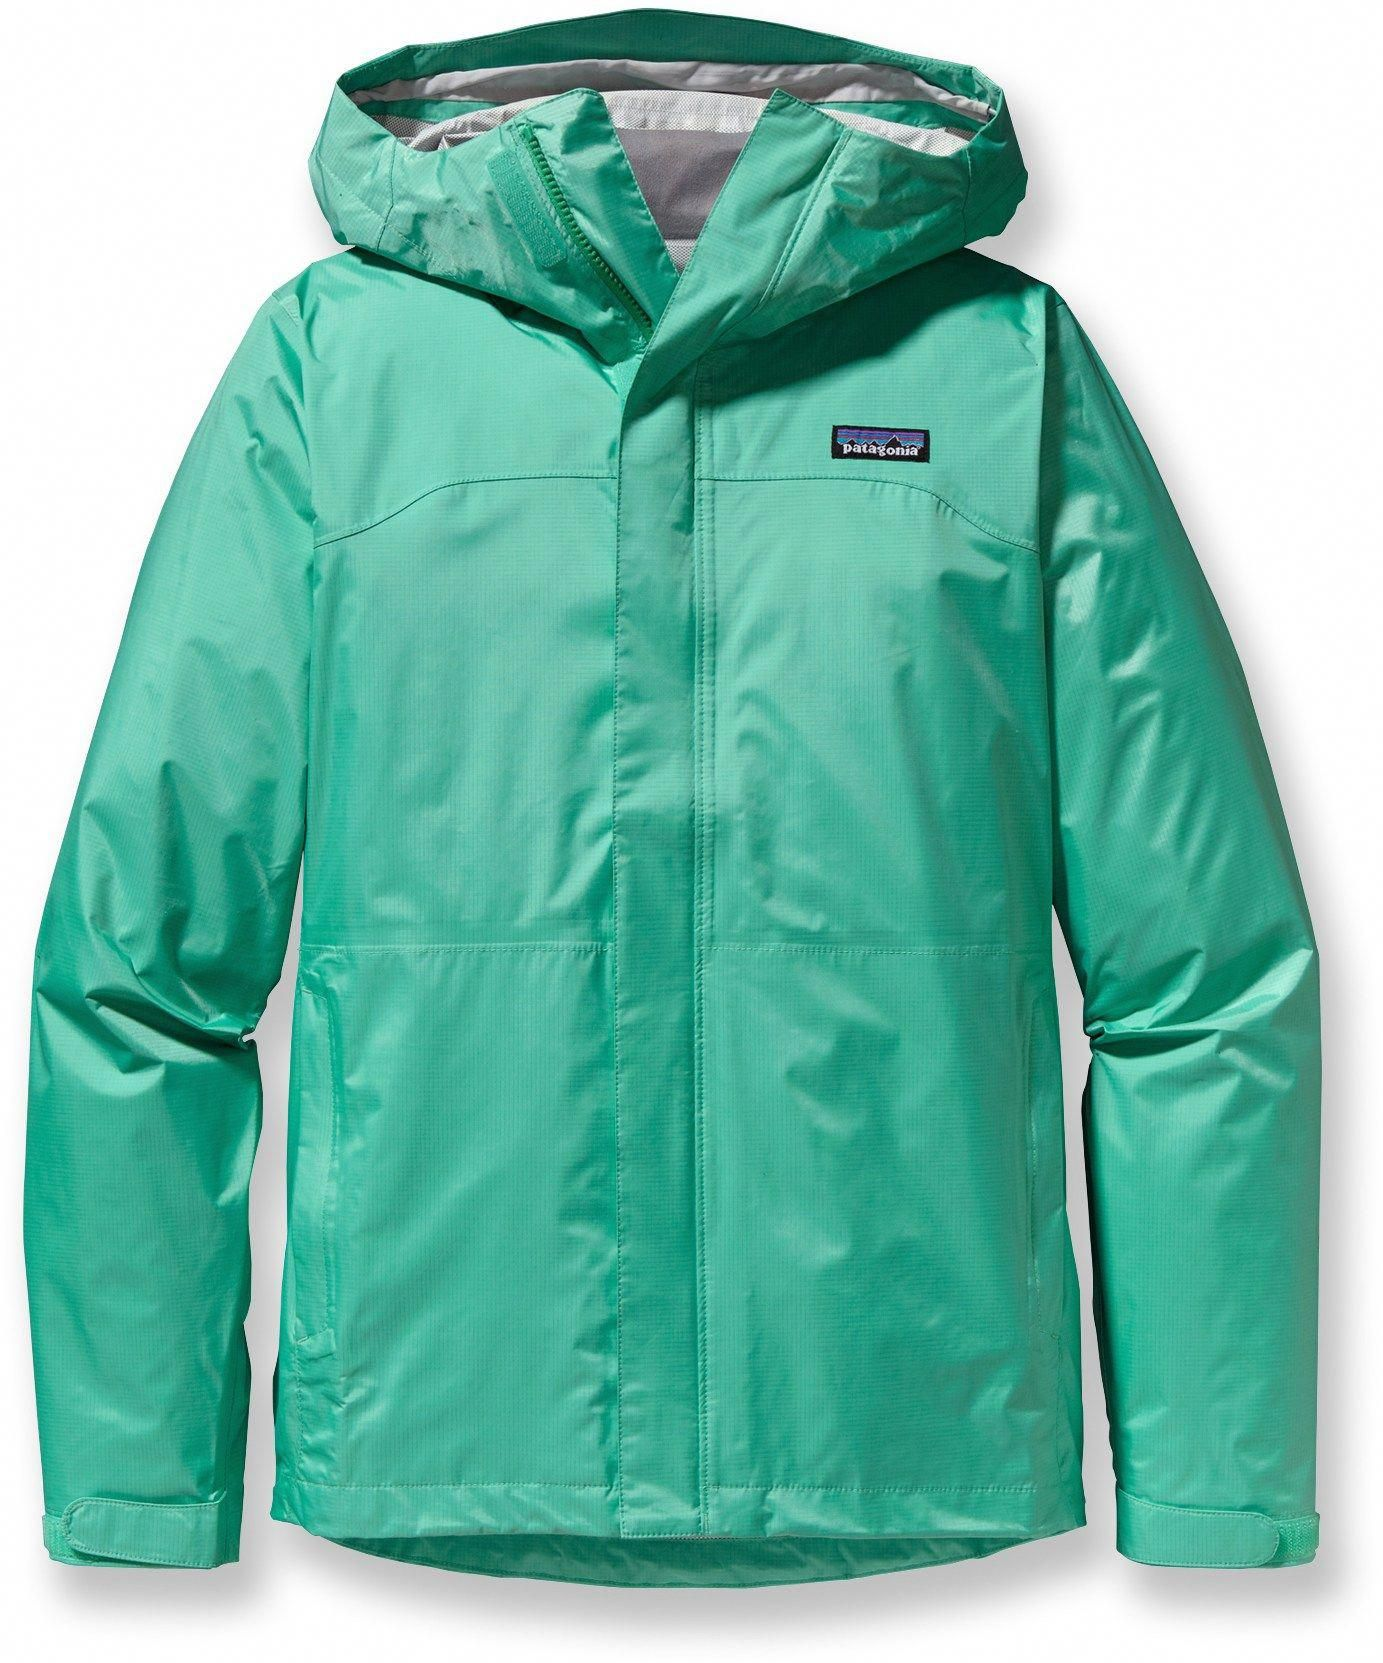 250d6b844 Patagonia Torrentshell Jacket - Women's - Free Shipping at REI.com. Perfect  shell for